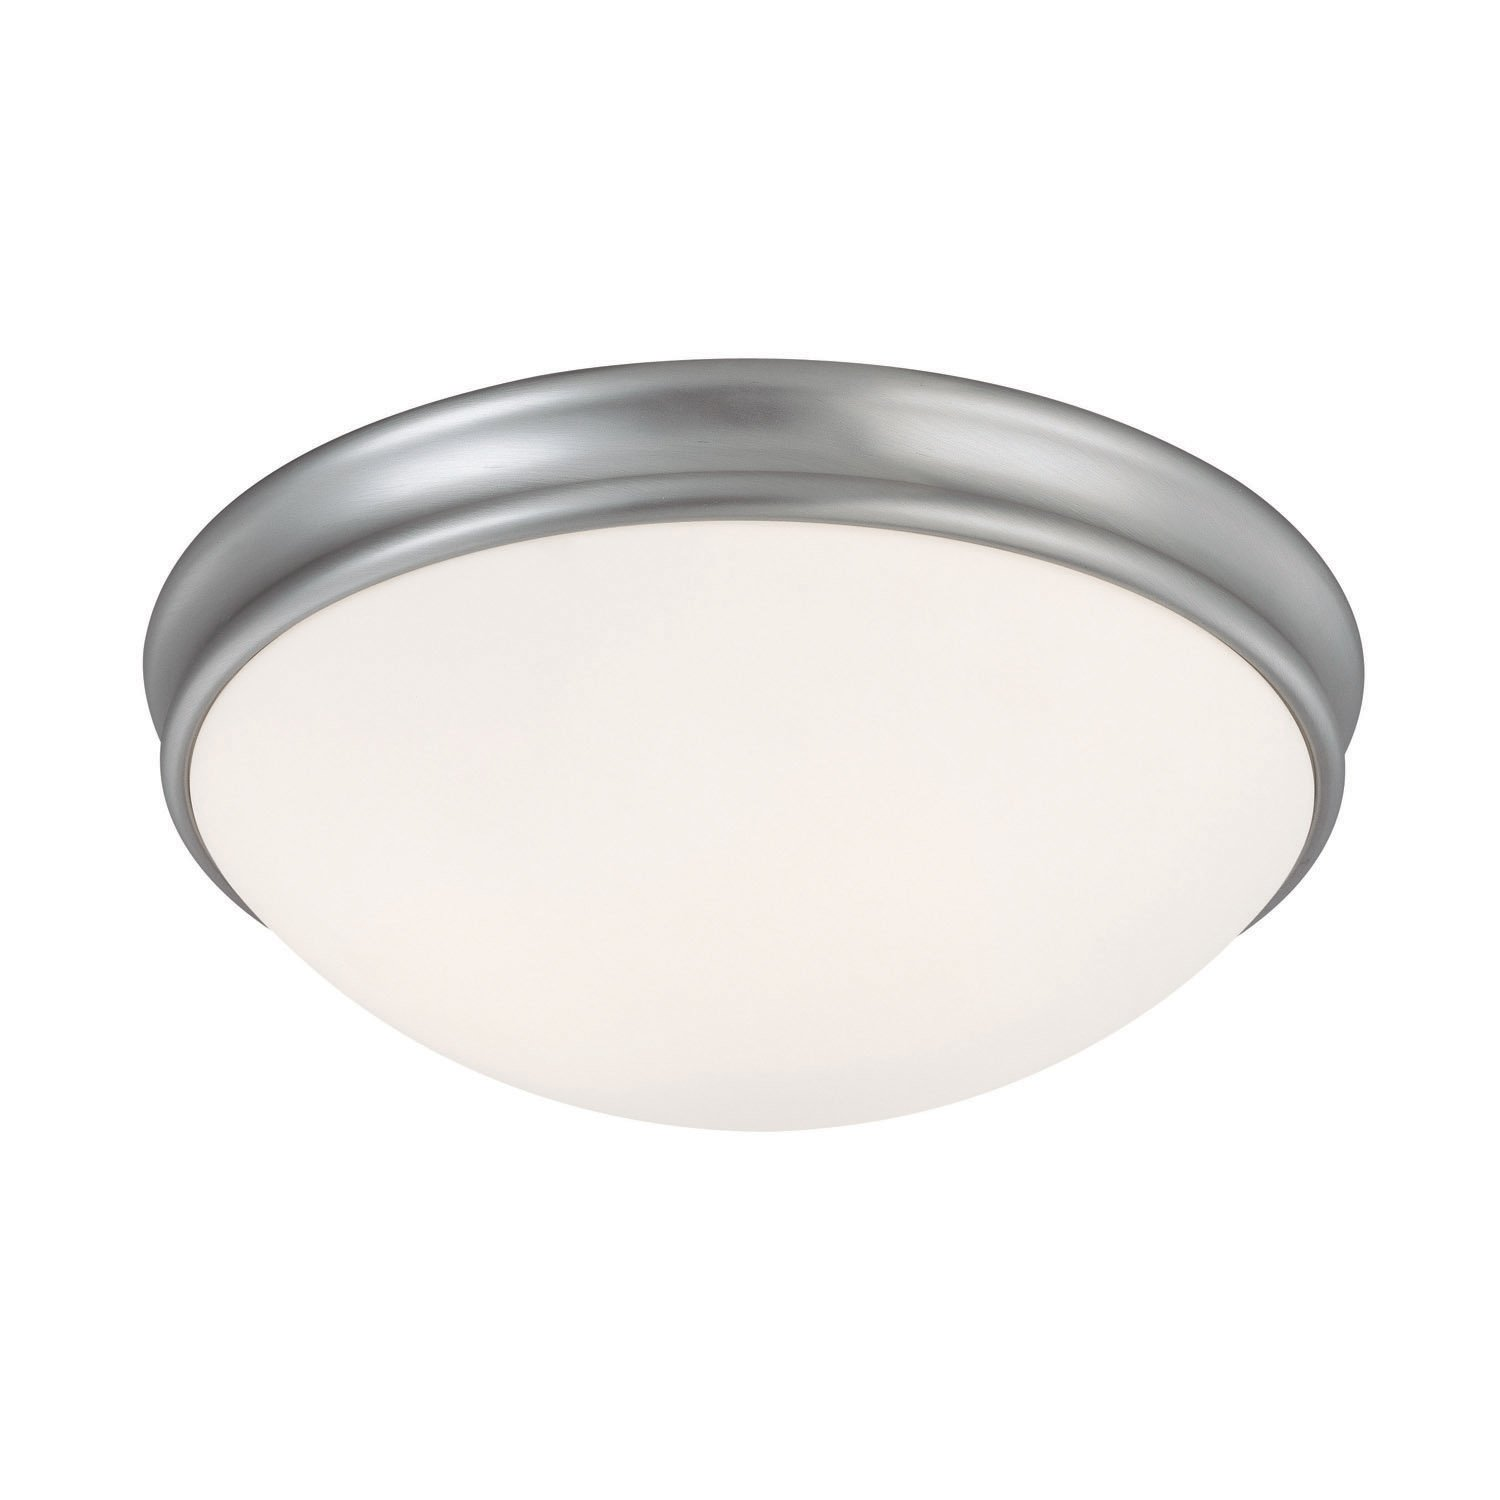 Capital Lighting 2034MN Flush Mount with White Glass Shades, Matte Nickel Finish